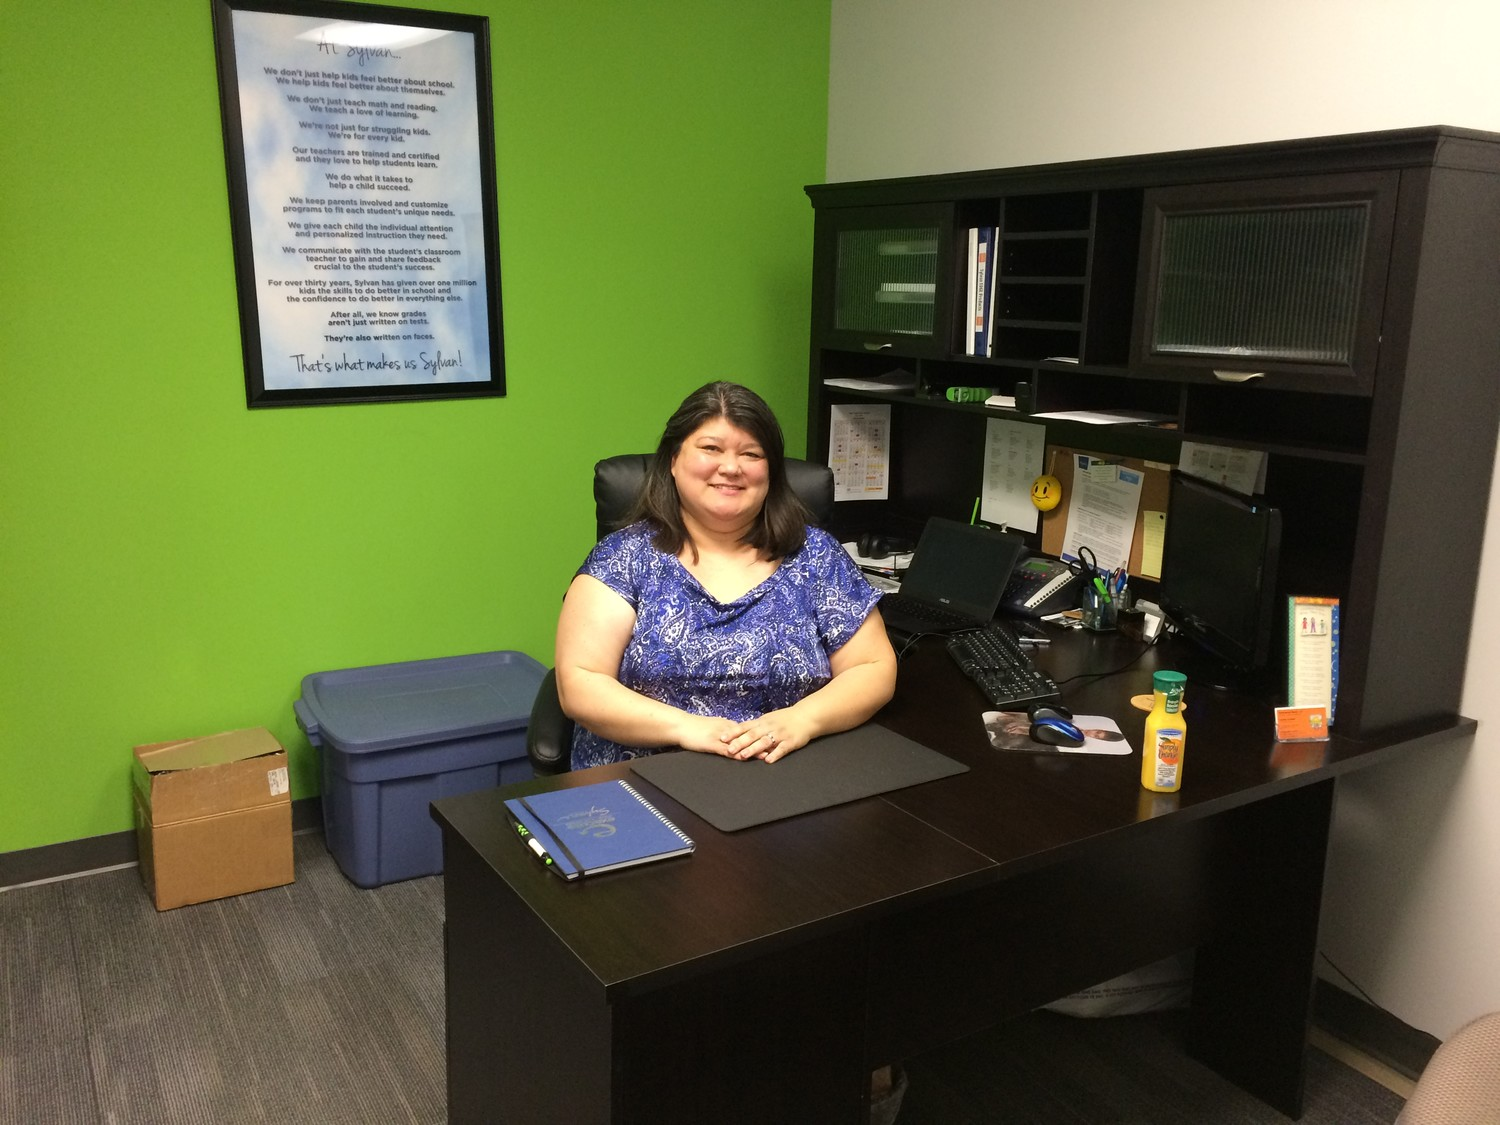 Heather Anckner, one of the co-owners of Sylvan Learning Center of Ponte Vedra Beach, poses for a photo in her office.